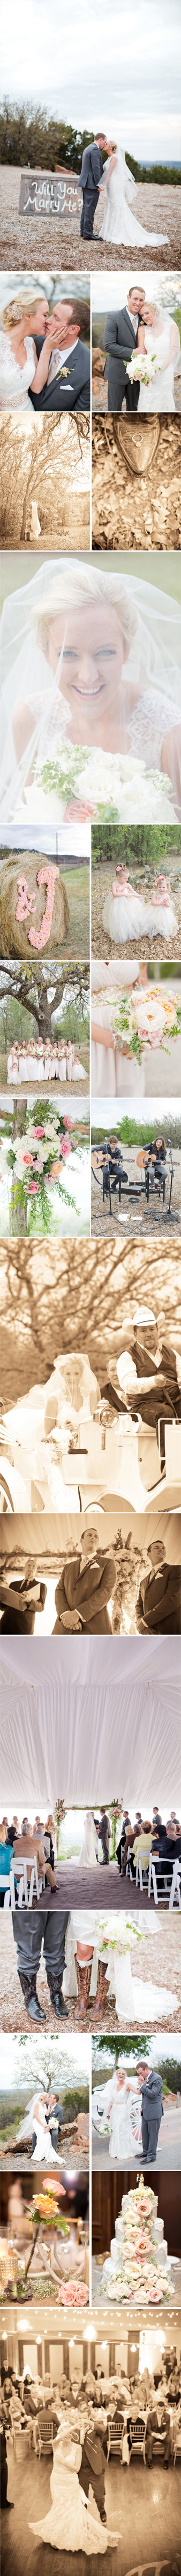 Wildcatter Ranch Wedding Rustic Chic